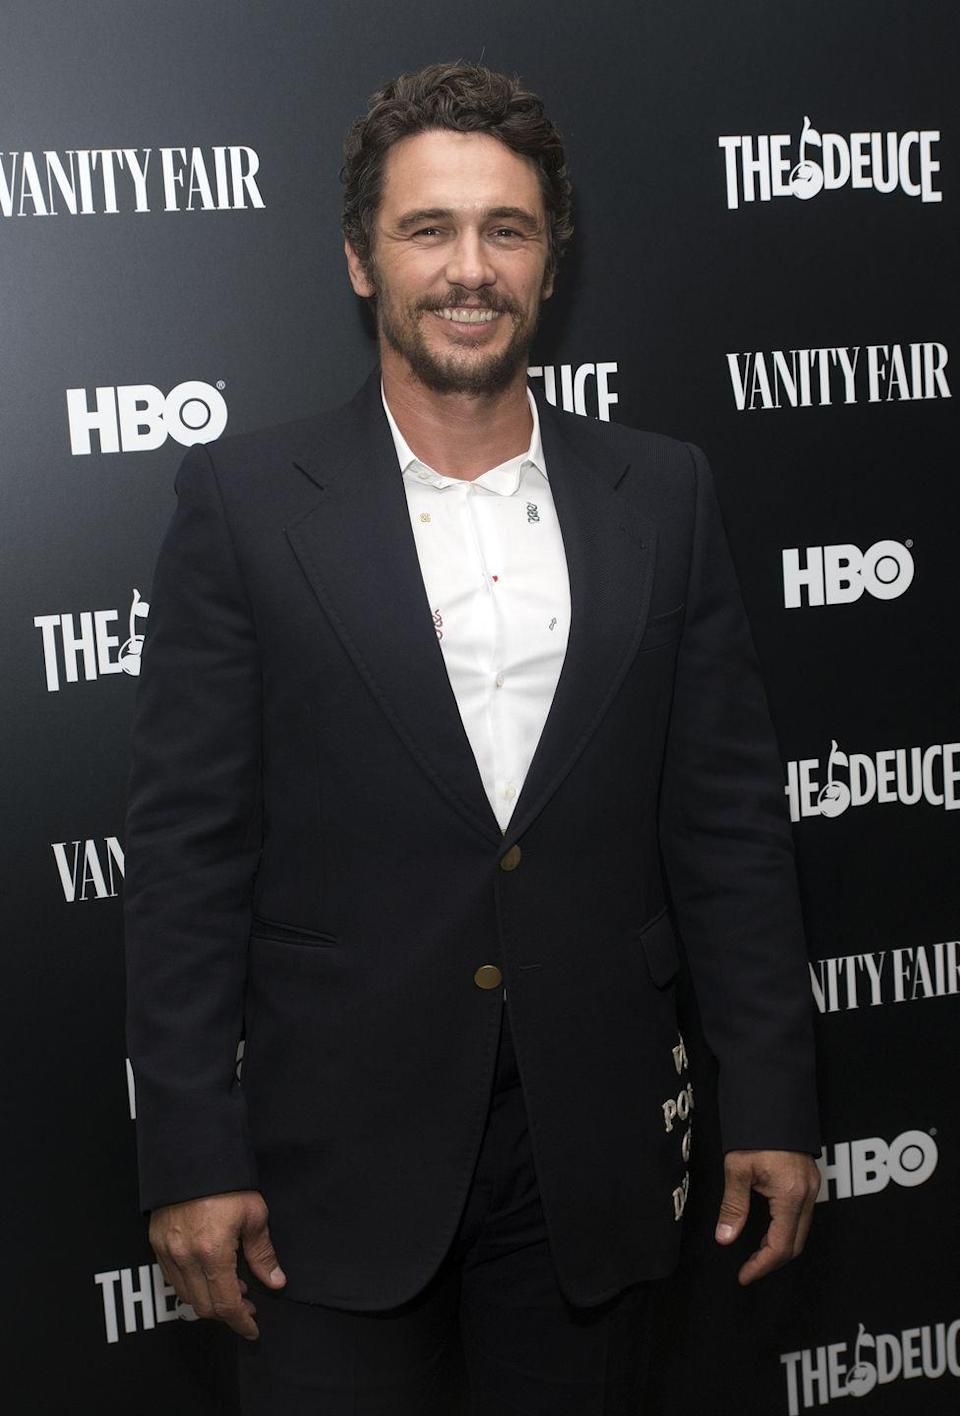 <p>In 2010, while also receiving degrees simultaneously from NYU Tisch and Brooklyn College, Franco pursued and graduated with a master's degree from Columbia University.</p>